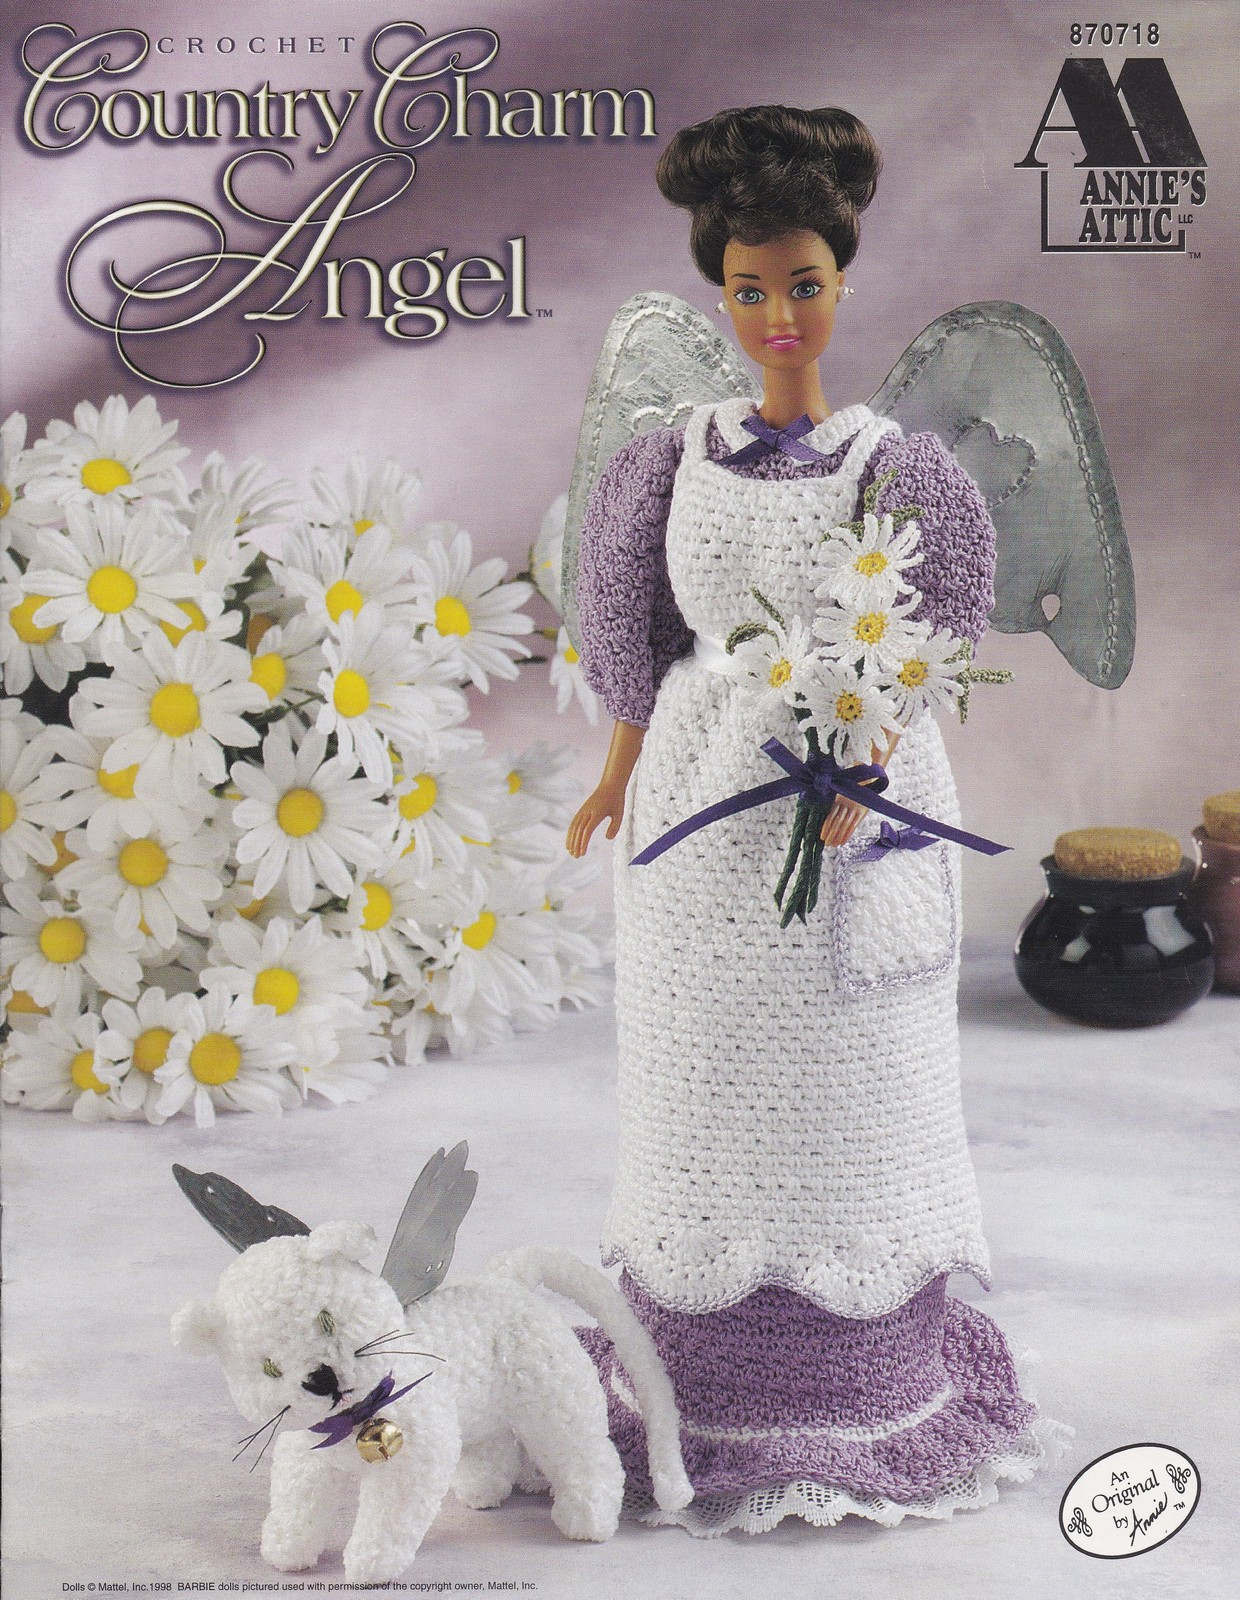 Country Charm Angel, Annie's Attic Doll Clothes Crochet Pattern Booklet 870718